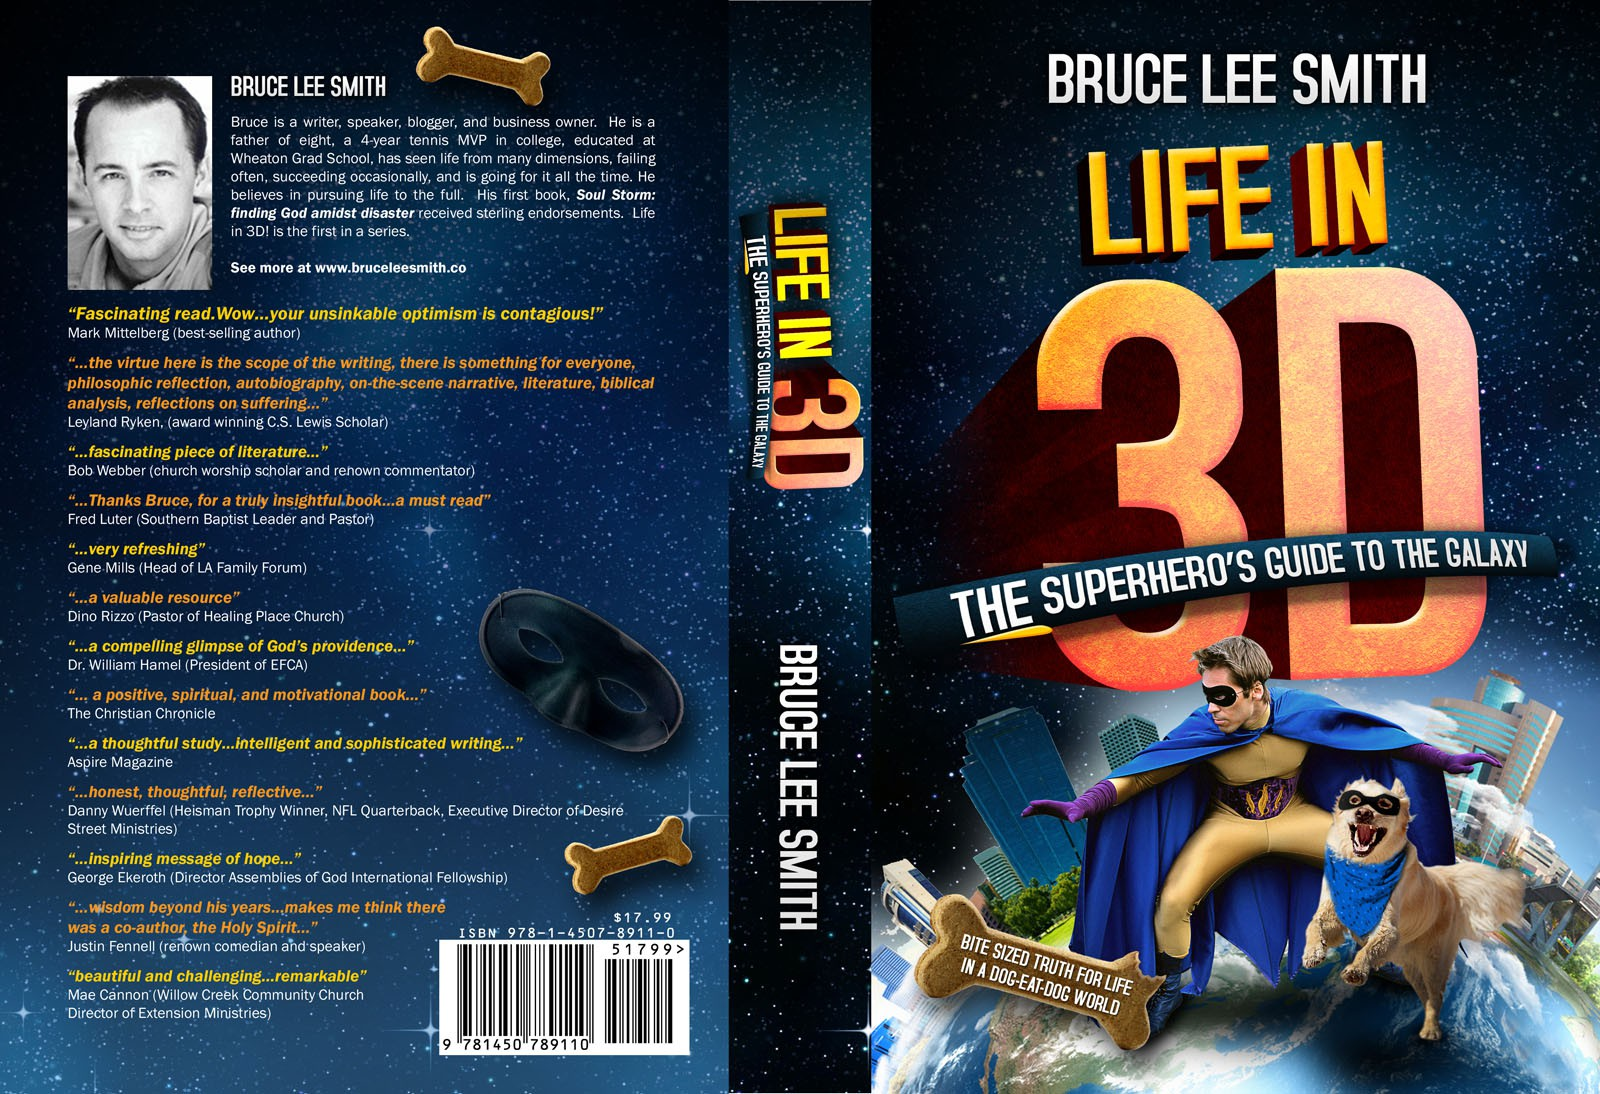 Help Bruce Lee Smith, Author with a new book cover design